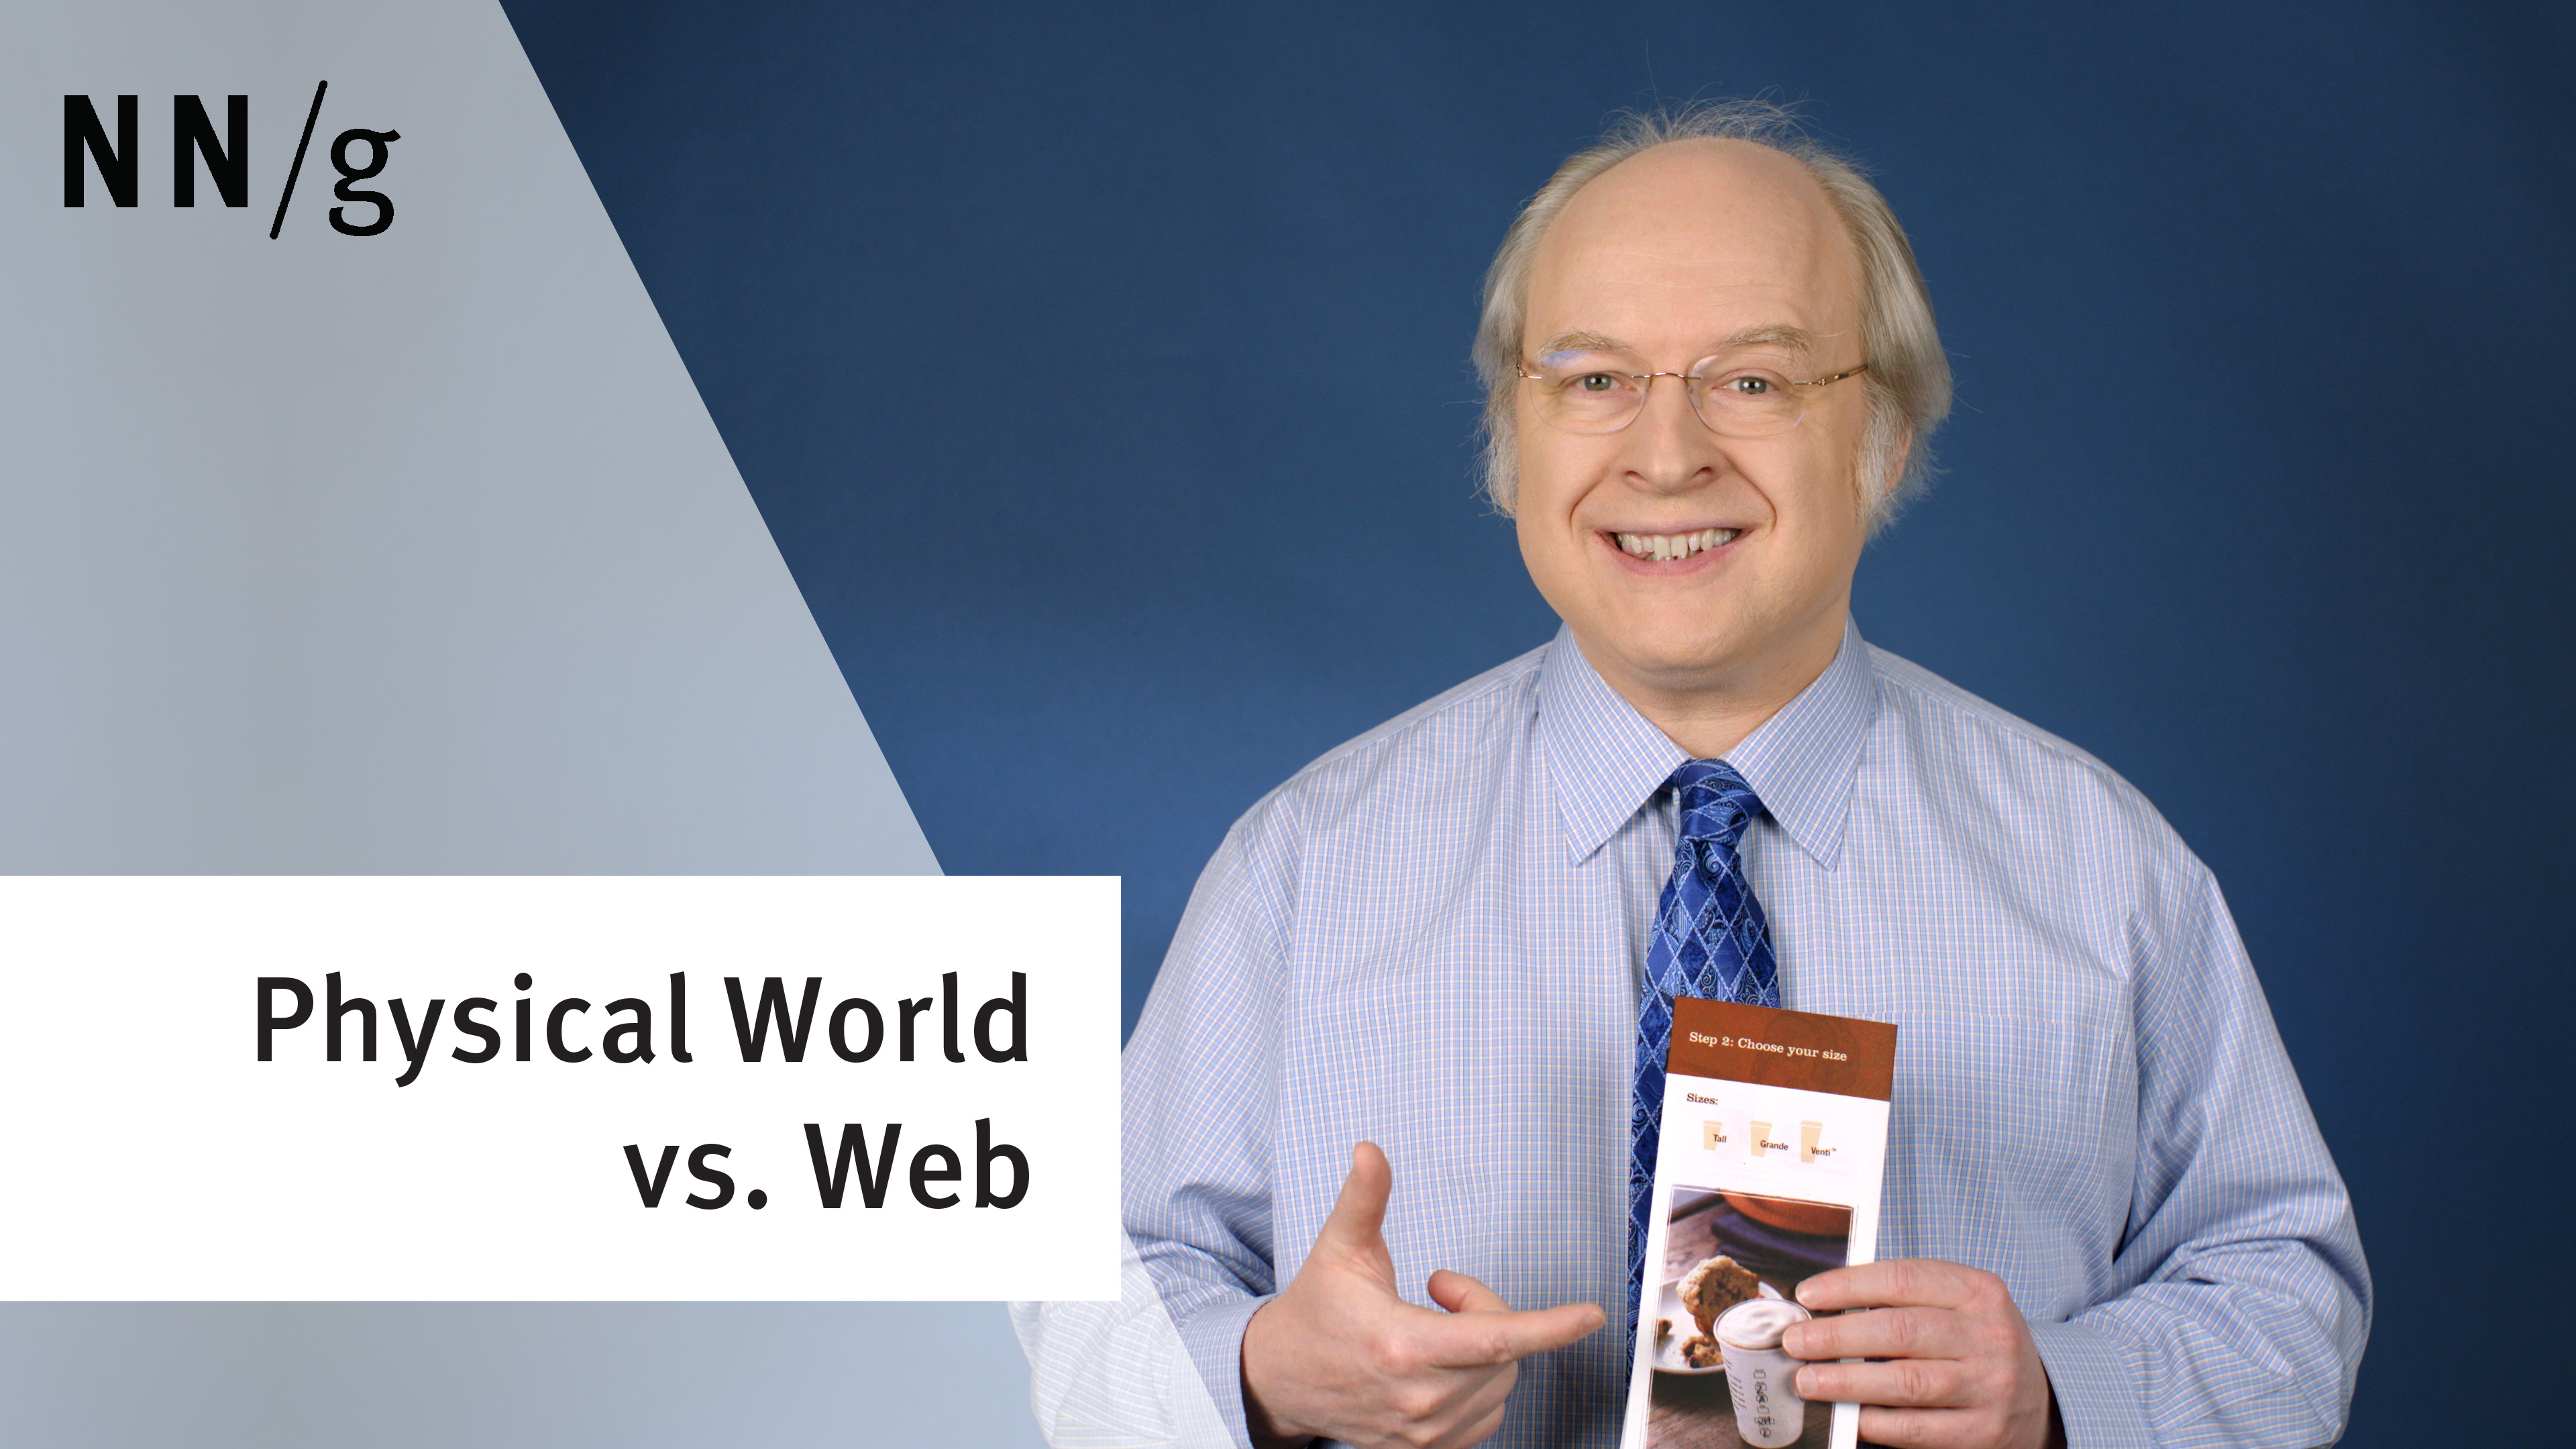 Usability in the Physical World vs. on the Web